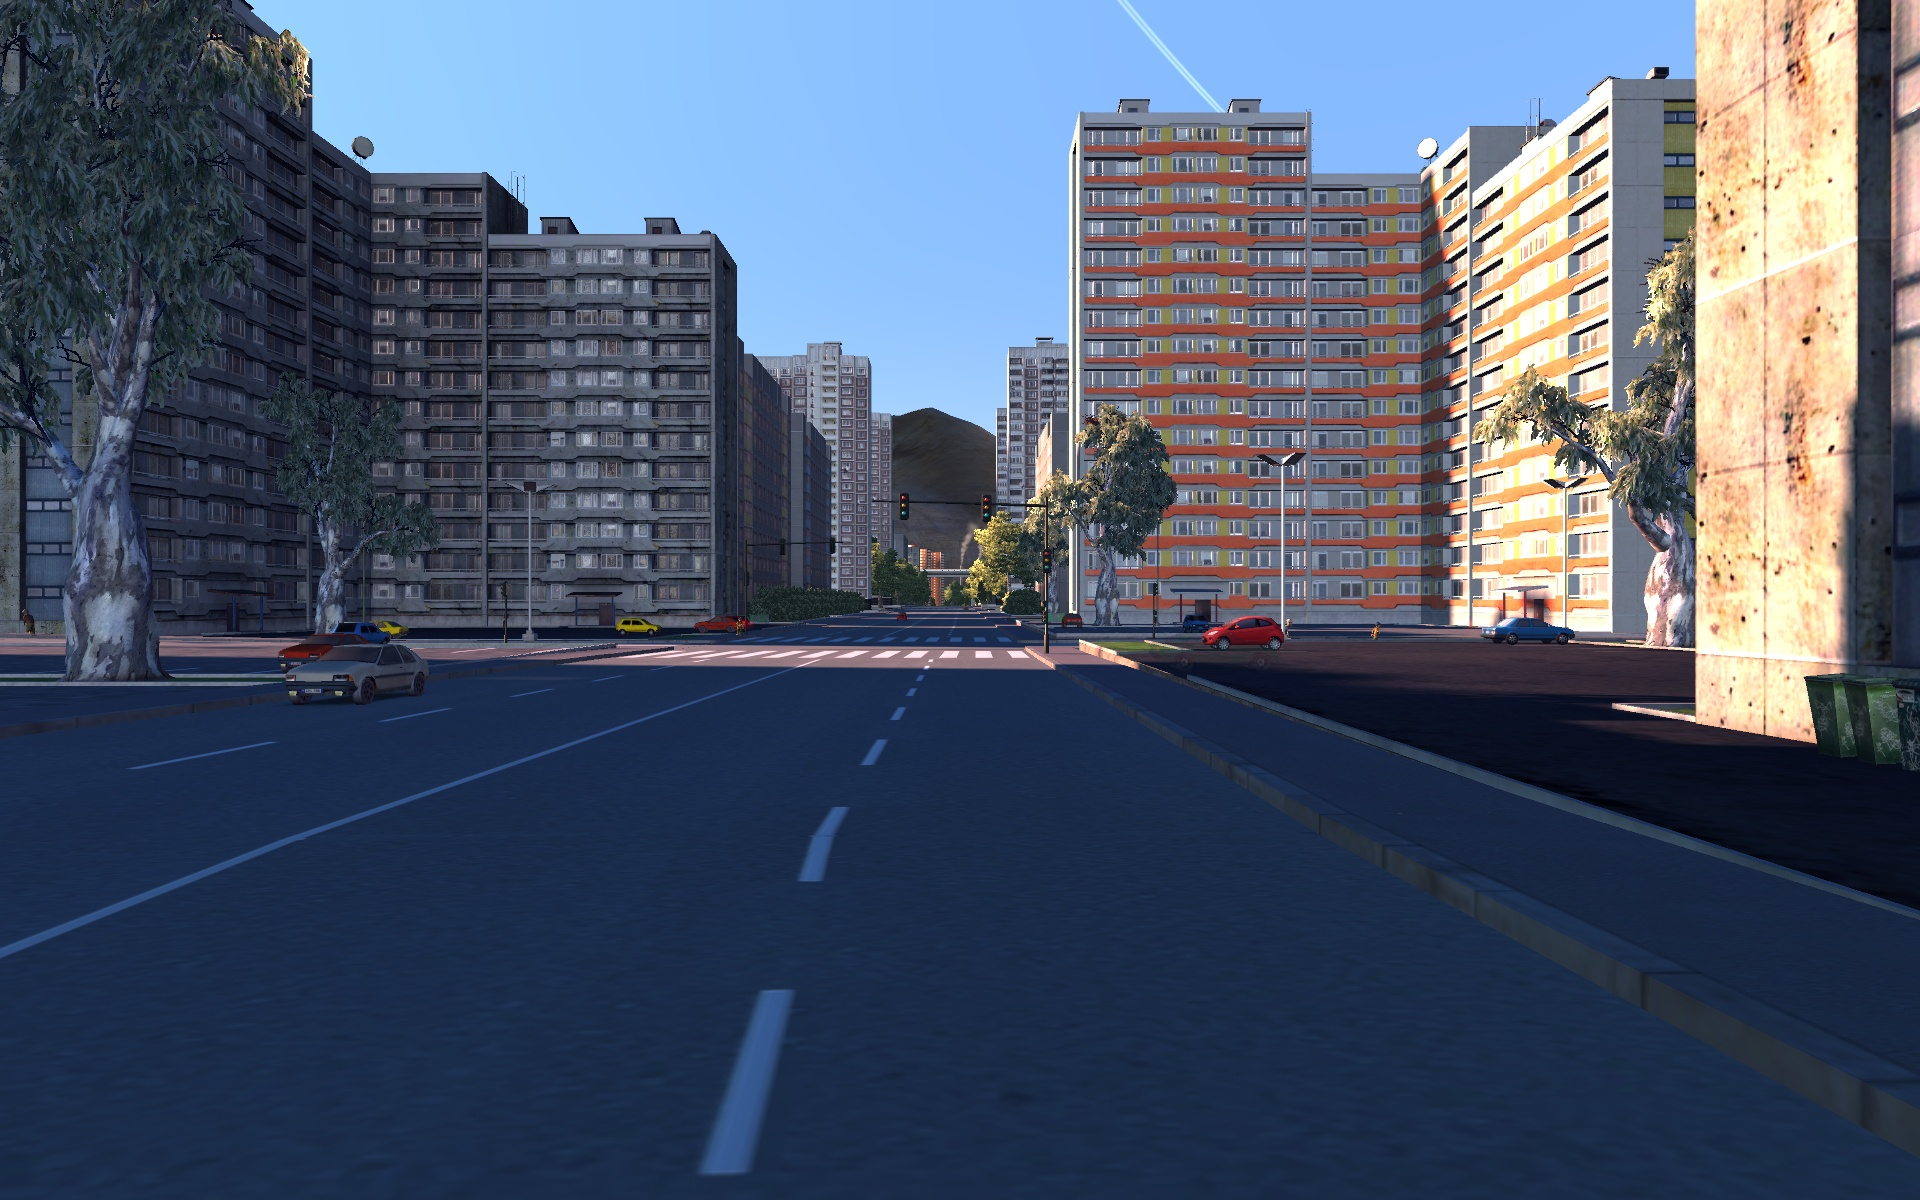 cxl_screenshot_yekavalov_111.jpg